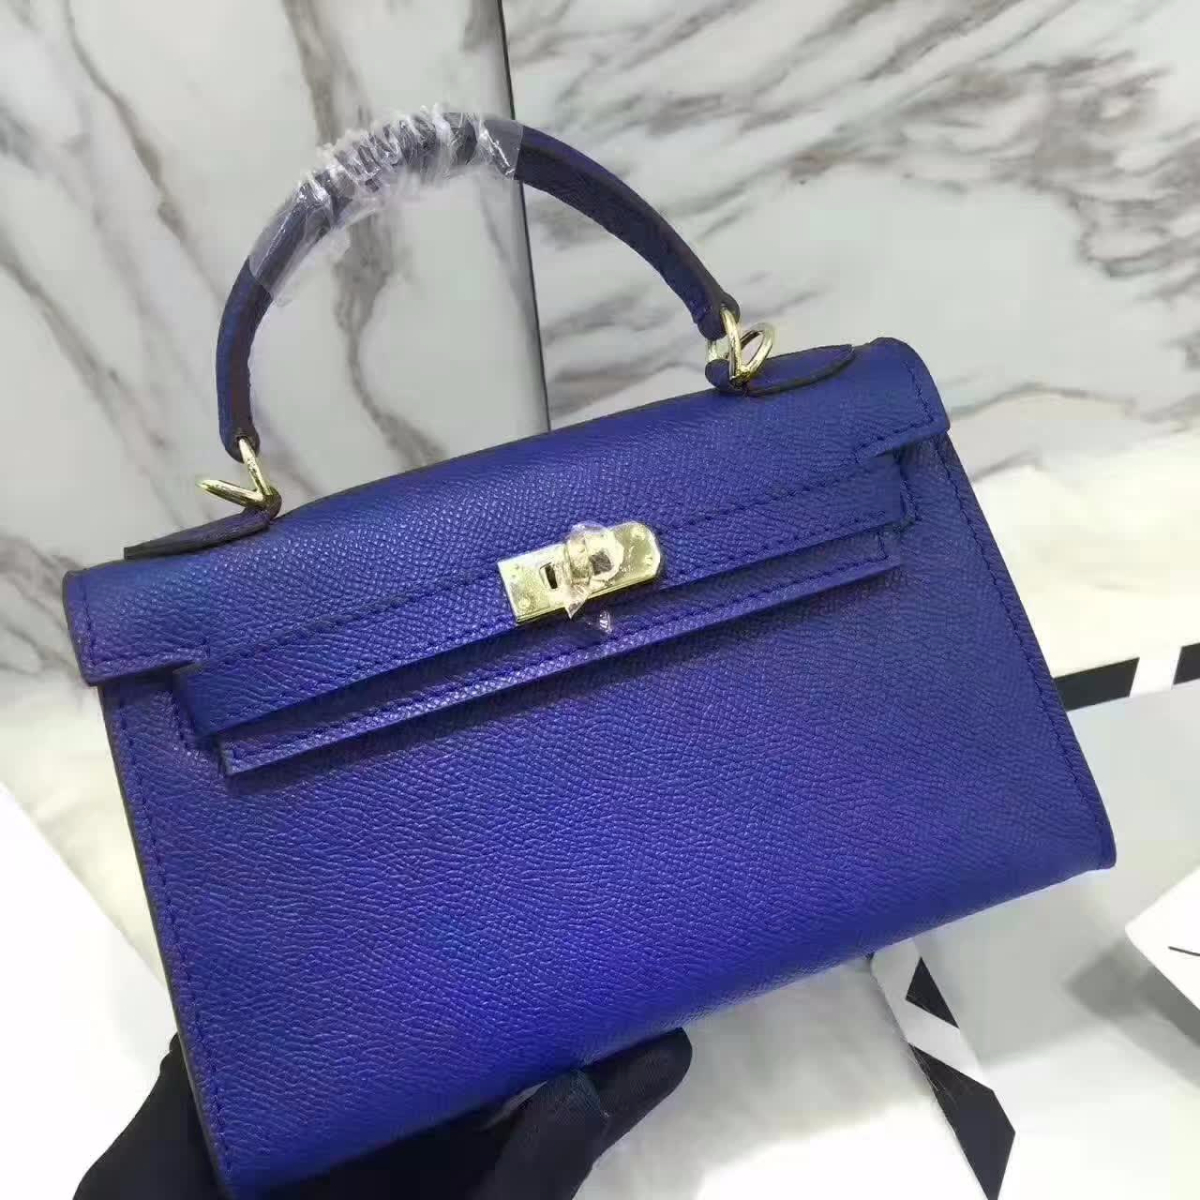 Hermes Mini Kelly Bag hhem589_0